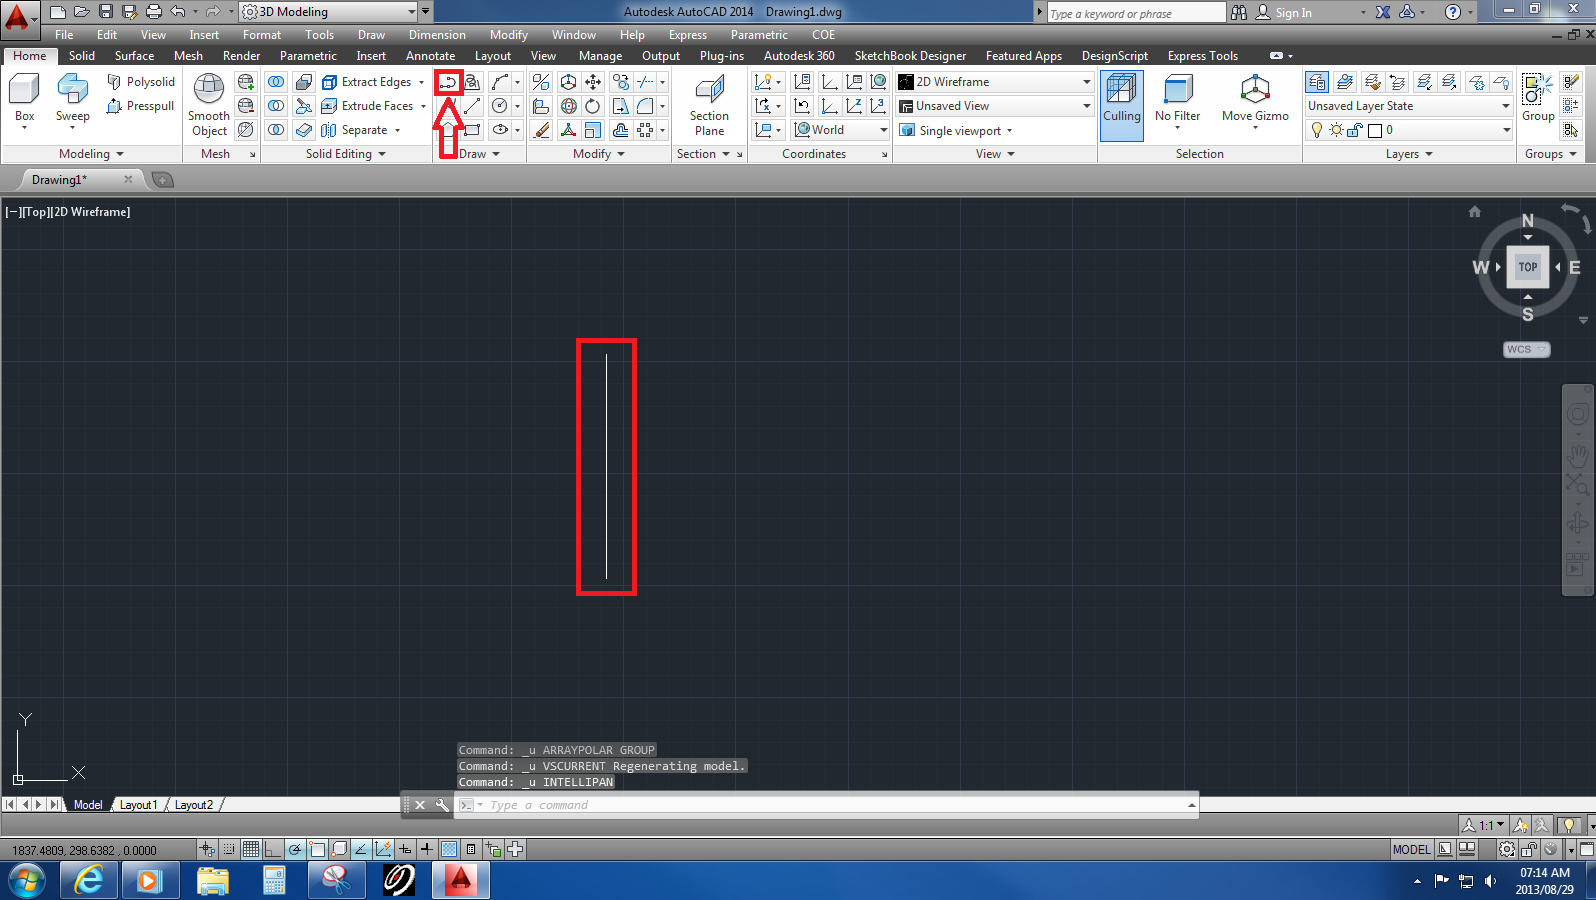 A 3 Join Pipe Design In Autocad Grabcad Tutorials Piping Layout Step 1